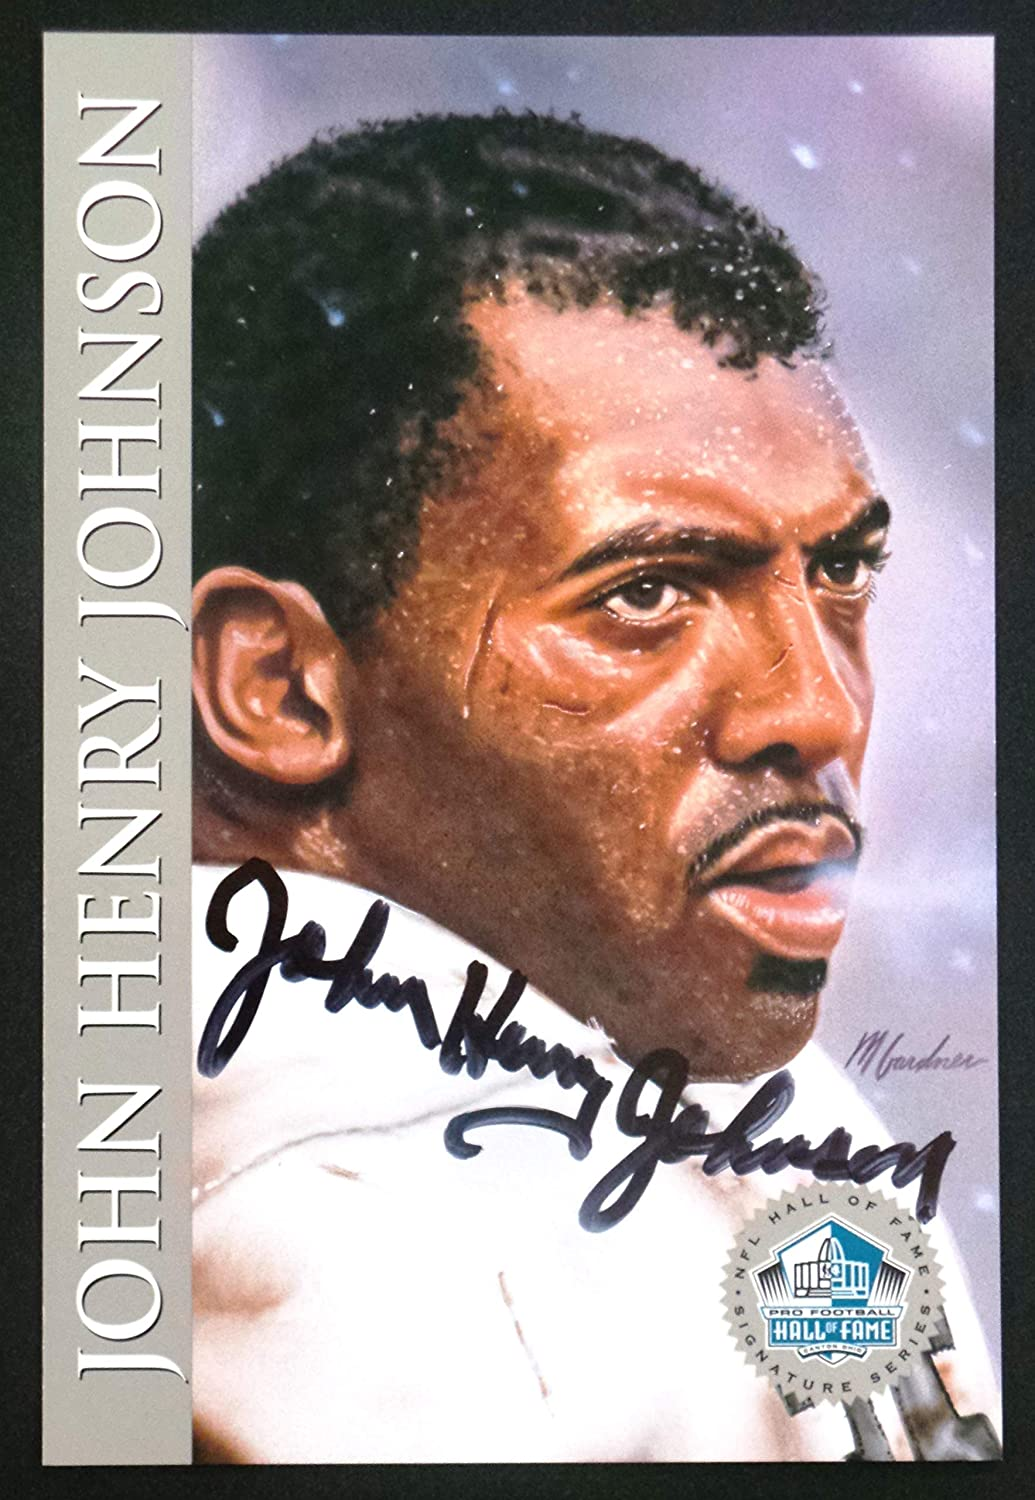 PRO FOOTBALL HALL OF FAME John Henry Johnson 1998 Platinum Signature Series NFL HOF Signed Autograph Limited Edition Card 81O6TO16A2BL